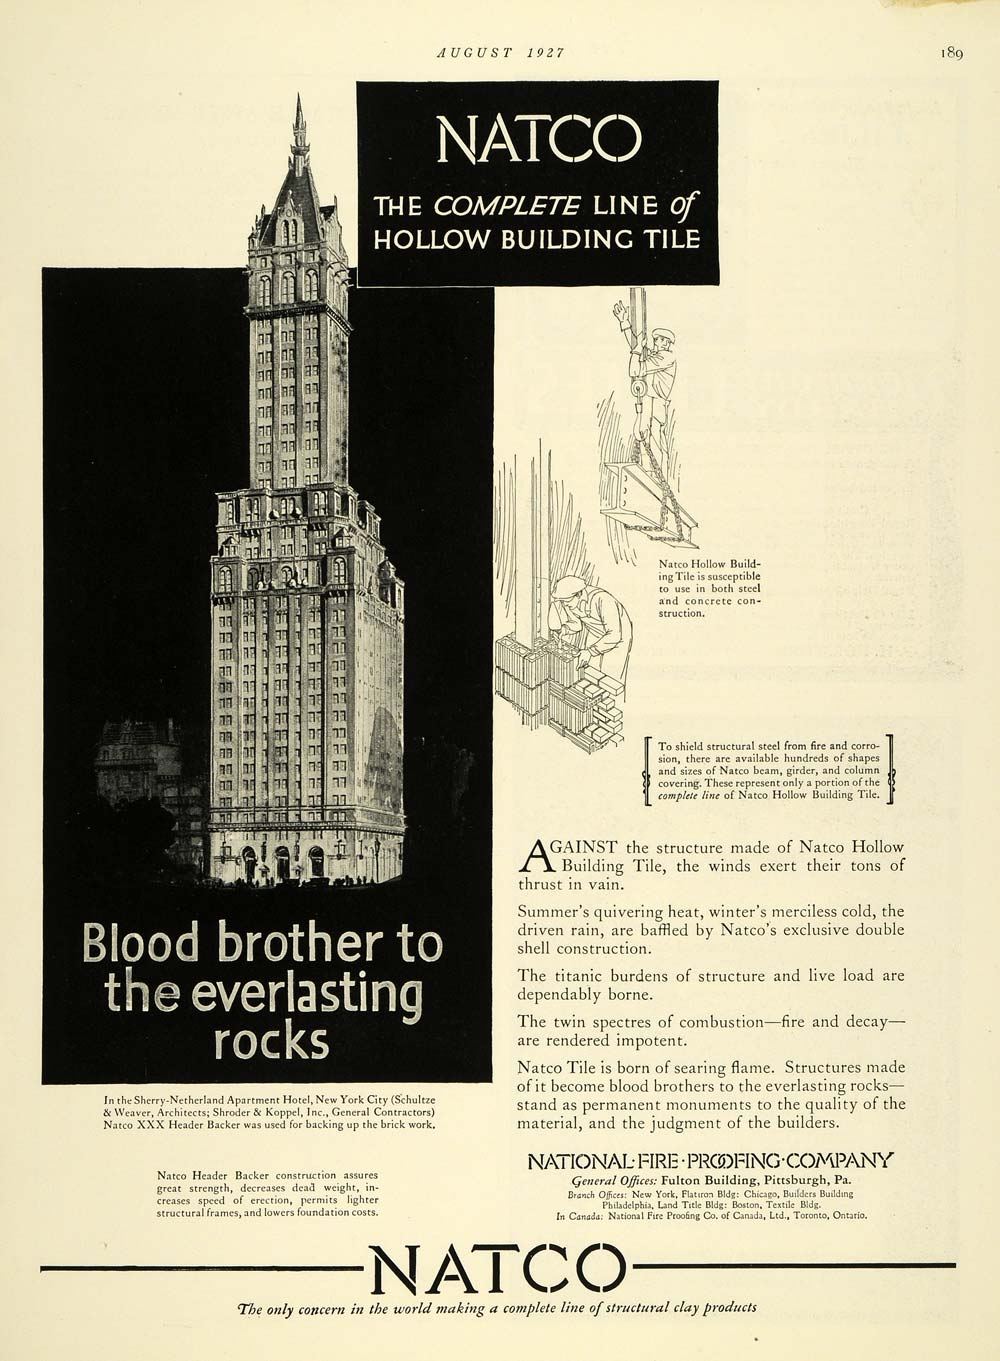 1927 Ad Natco National Fire Proofing Sherry Netherland - ORIGINAL THB1